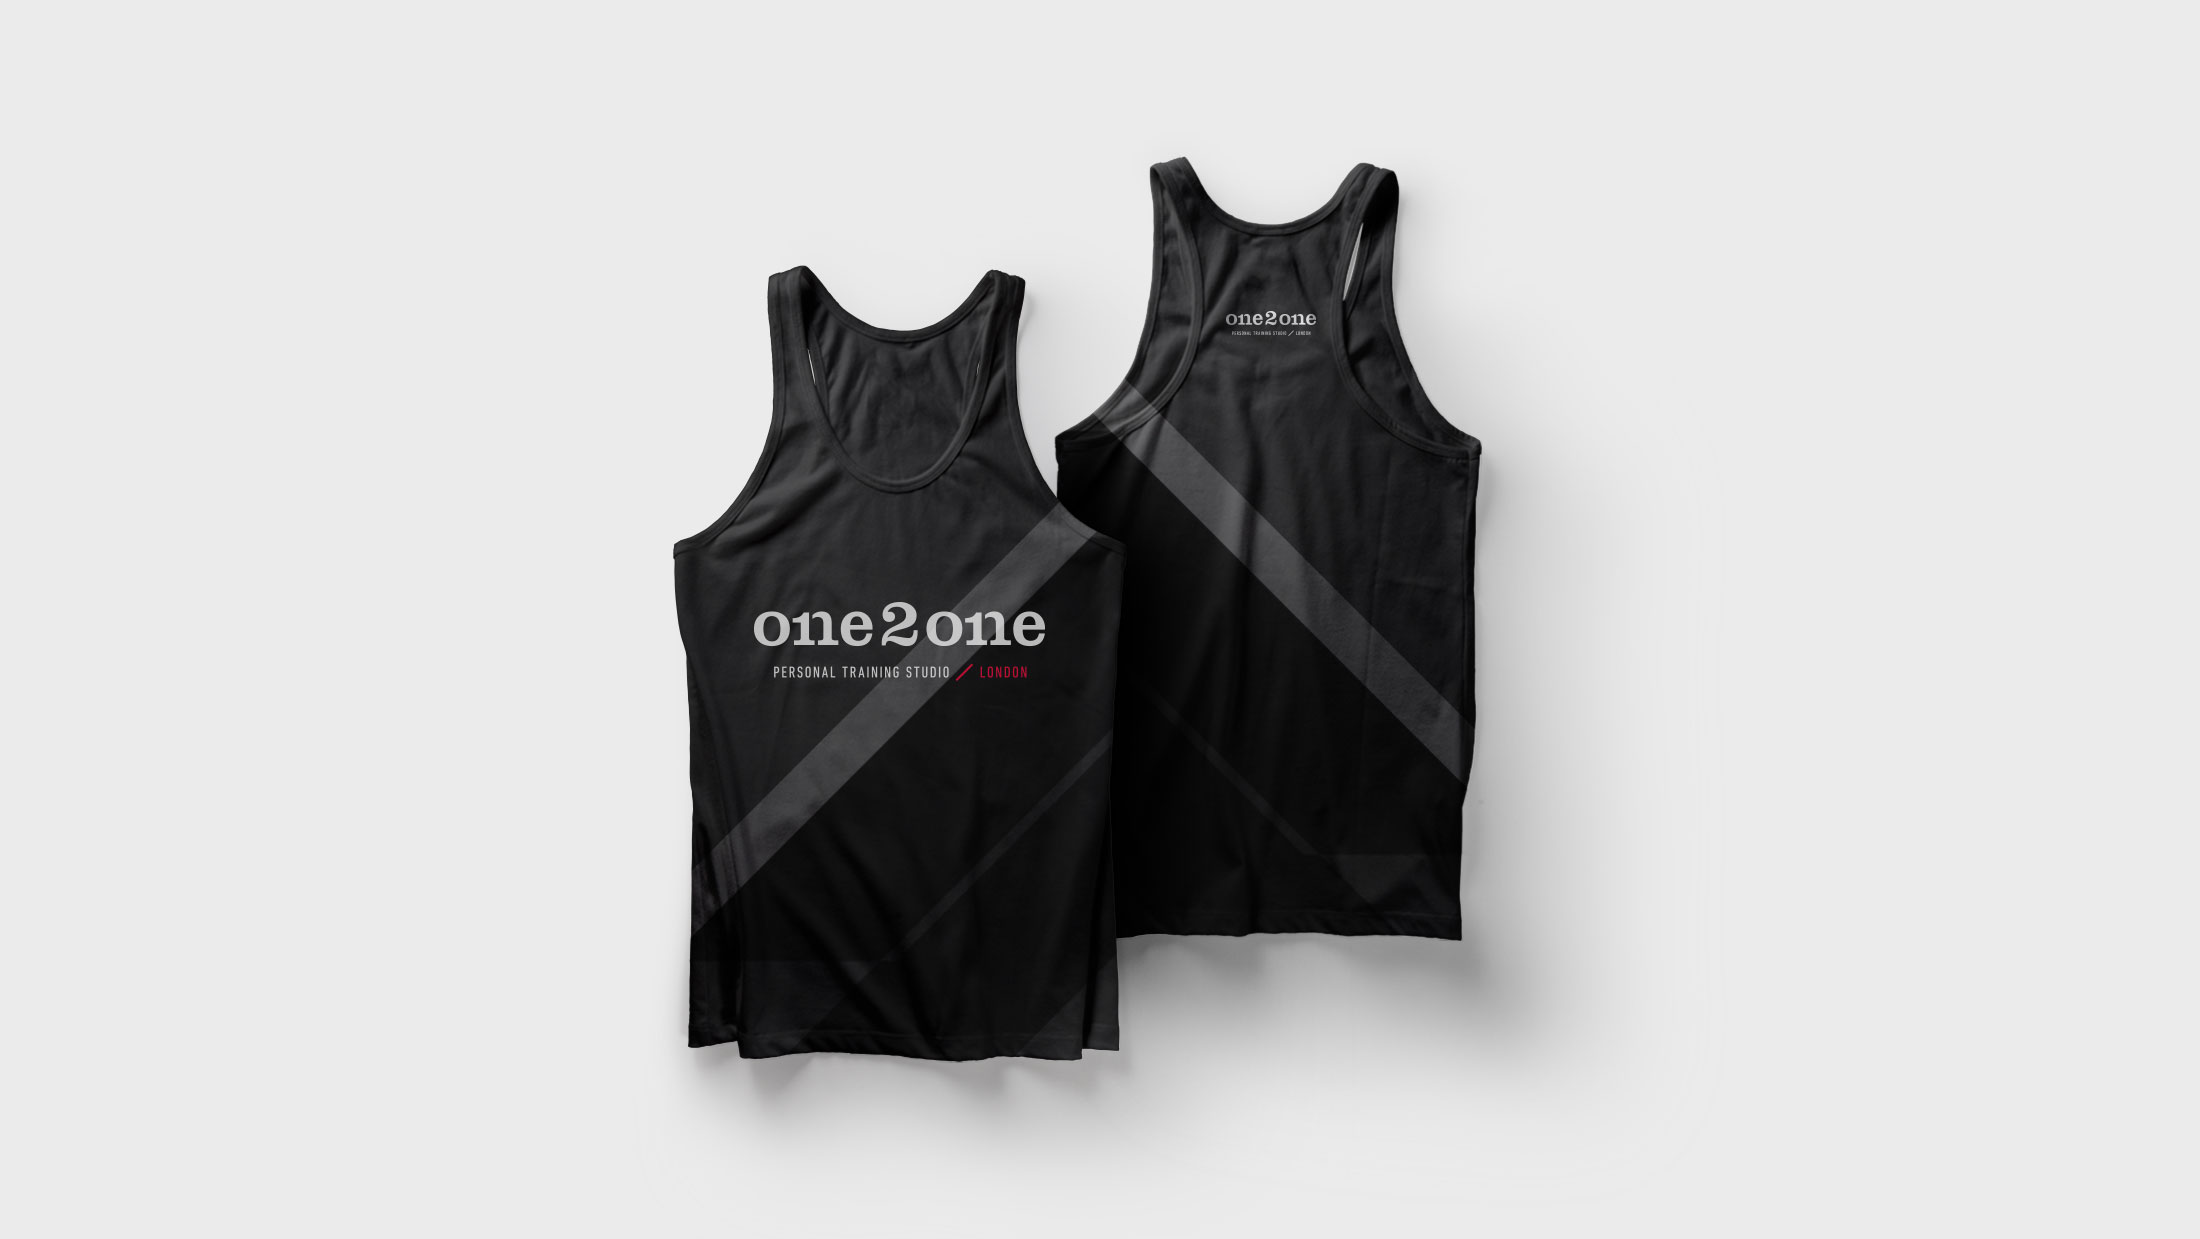 Apparel for One2One, a black tank top with diagonal line pattern